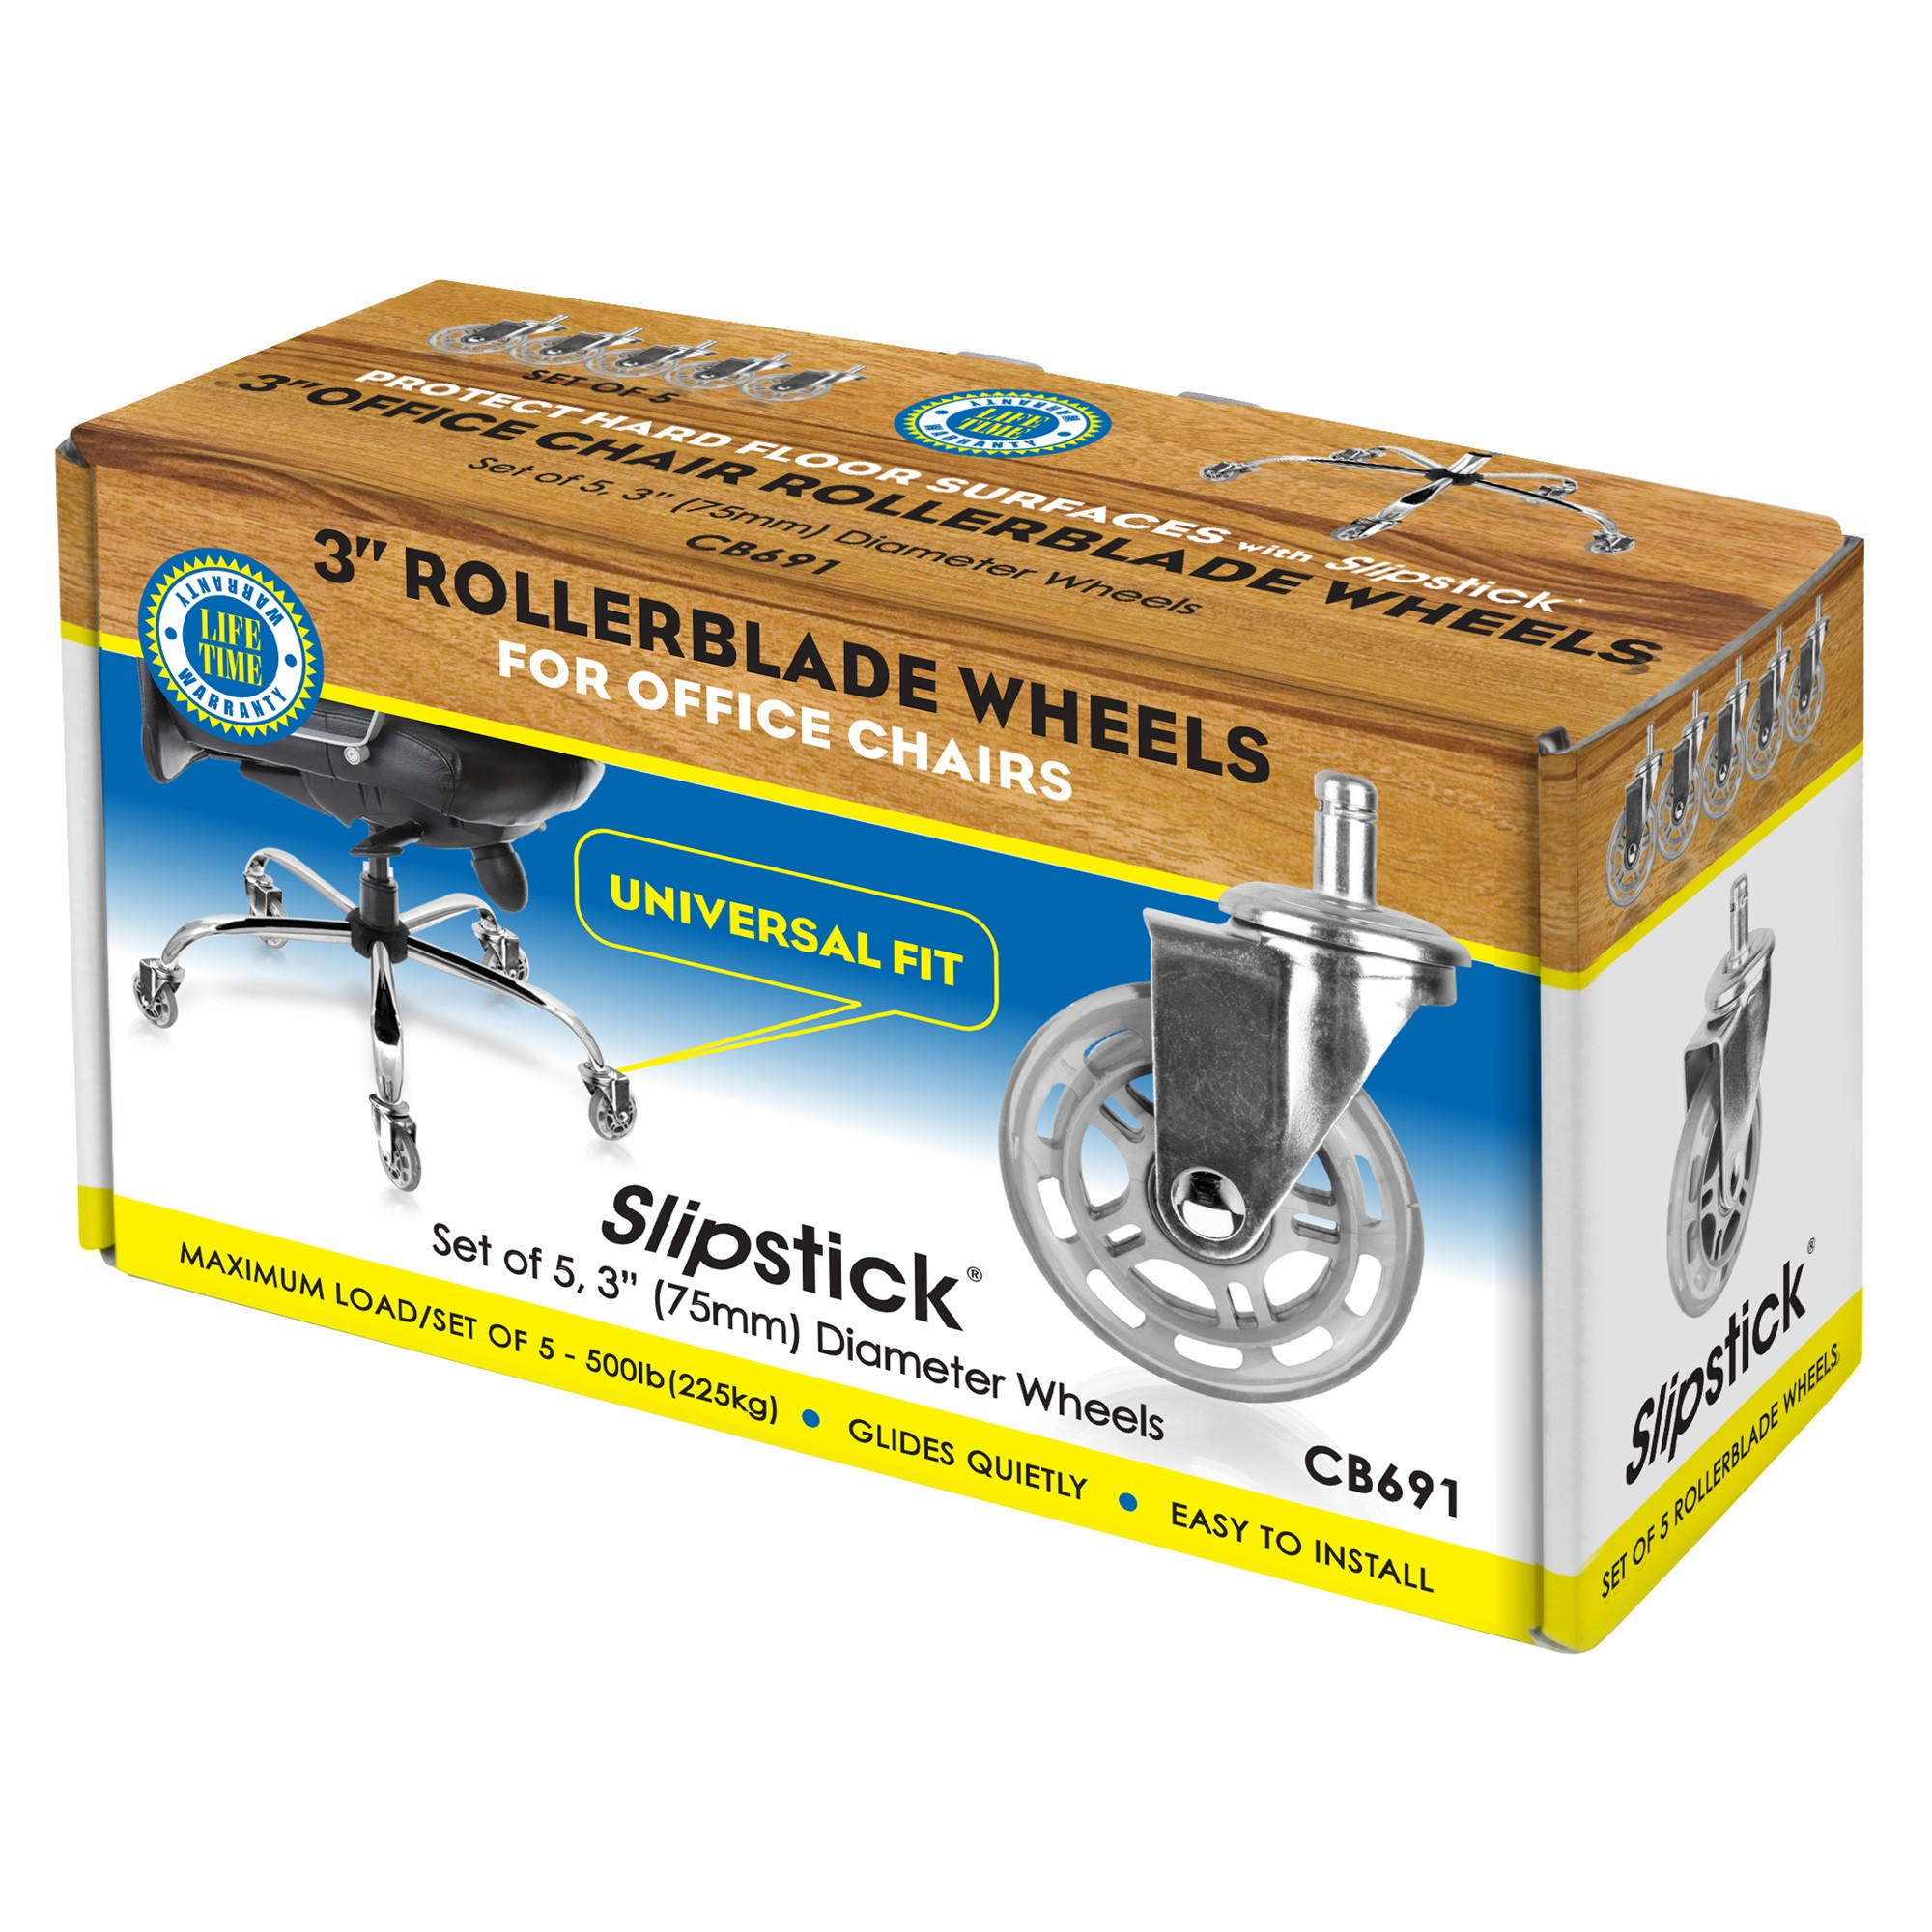 Slipstick Rollerblade Replacement Office Chair Wheels, Set of 5, Chrome